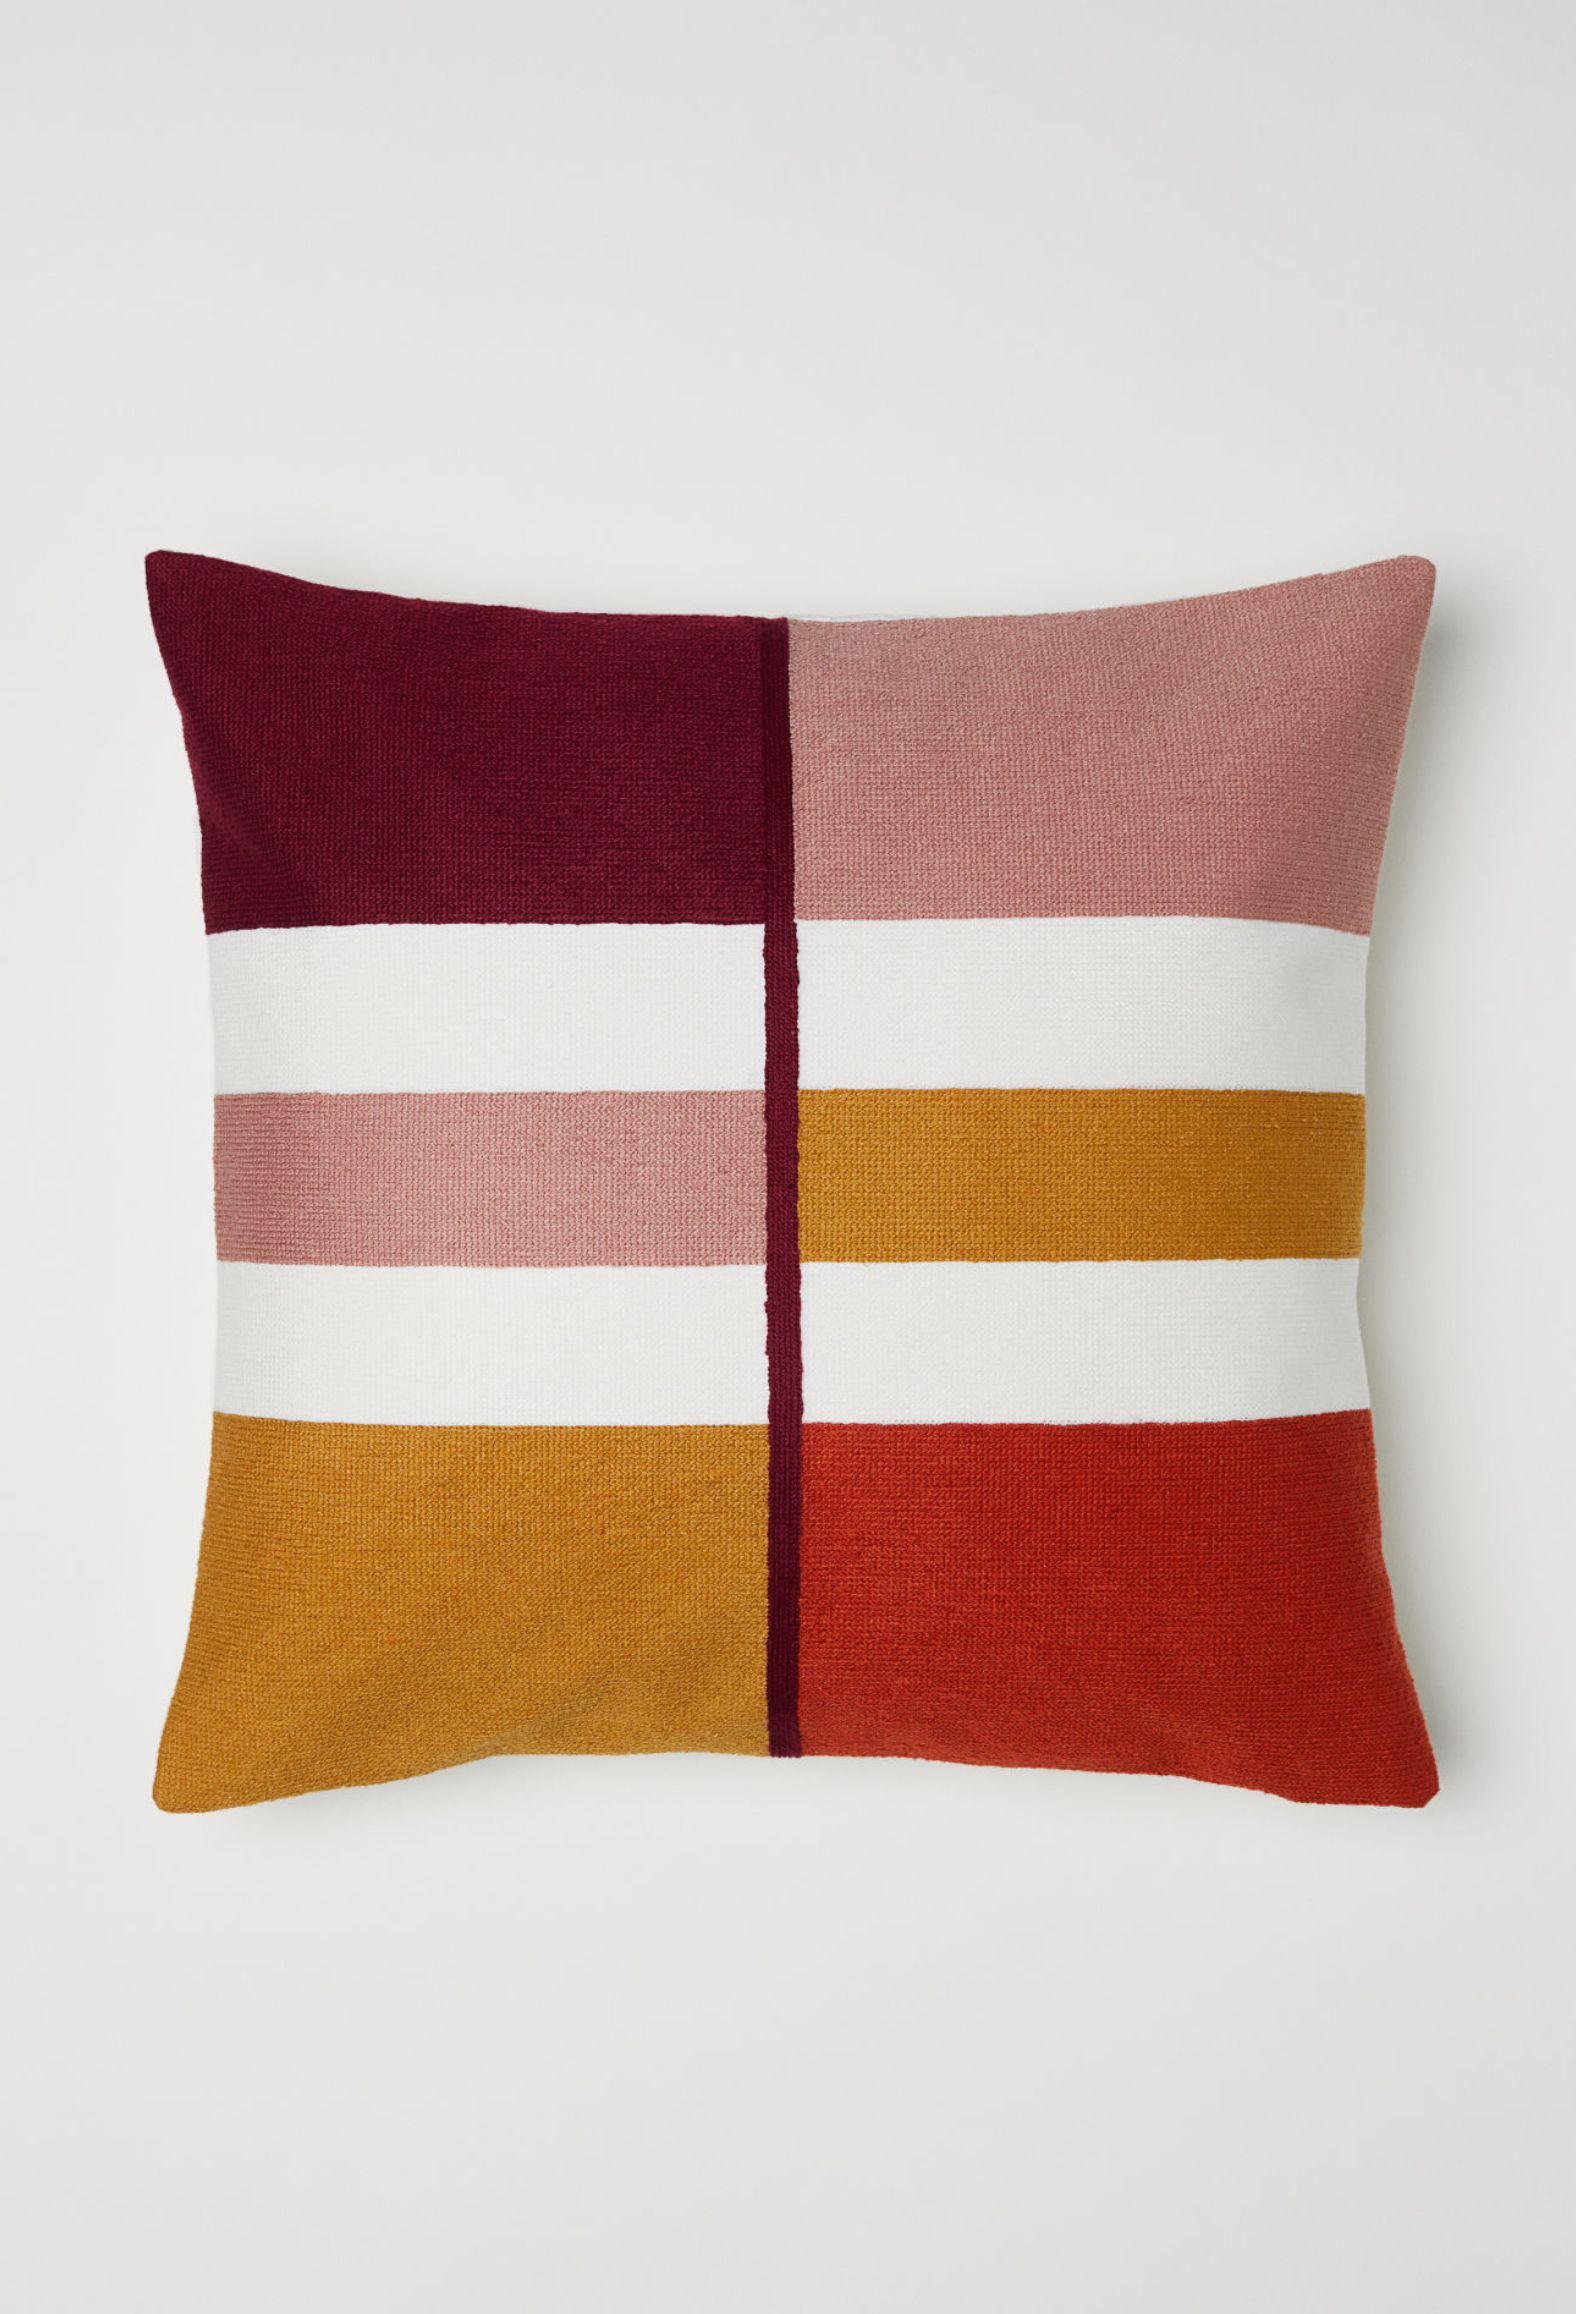 8 Statement Cushions Under 30 To Brighten Up Your Home Huffpost